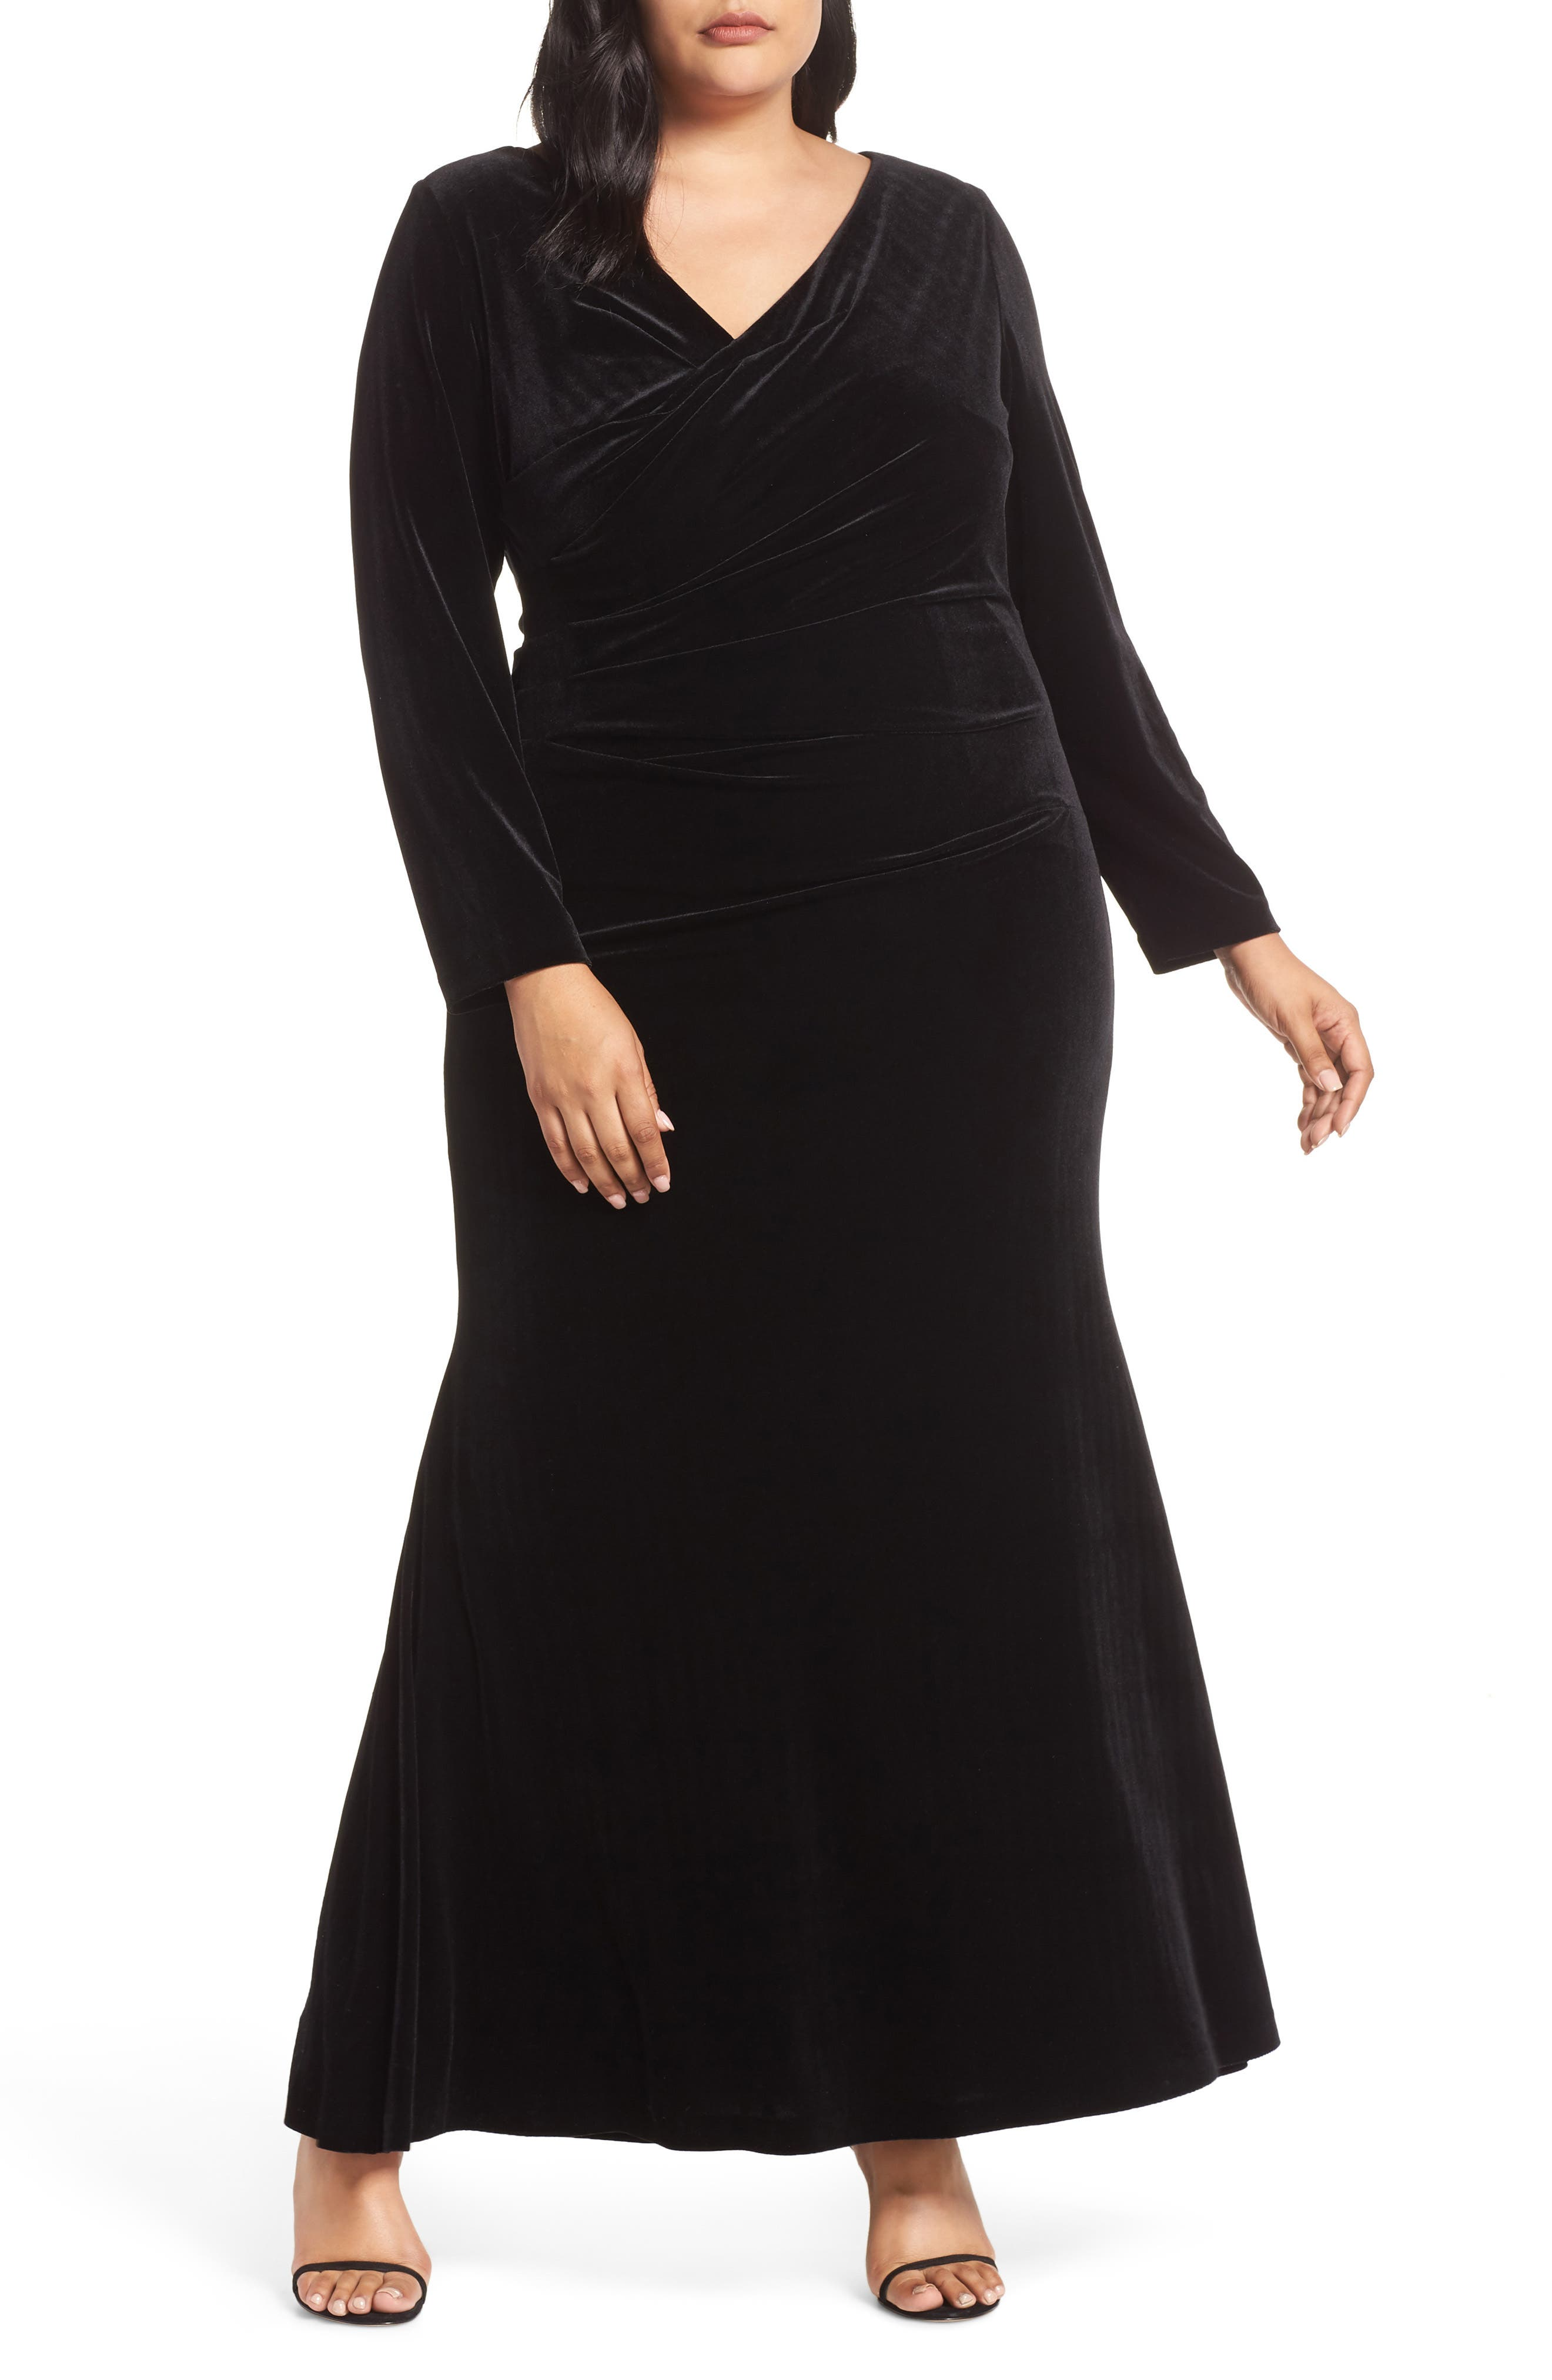 2 Splits Plus Size Formal Dresses with Sleeves